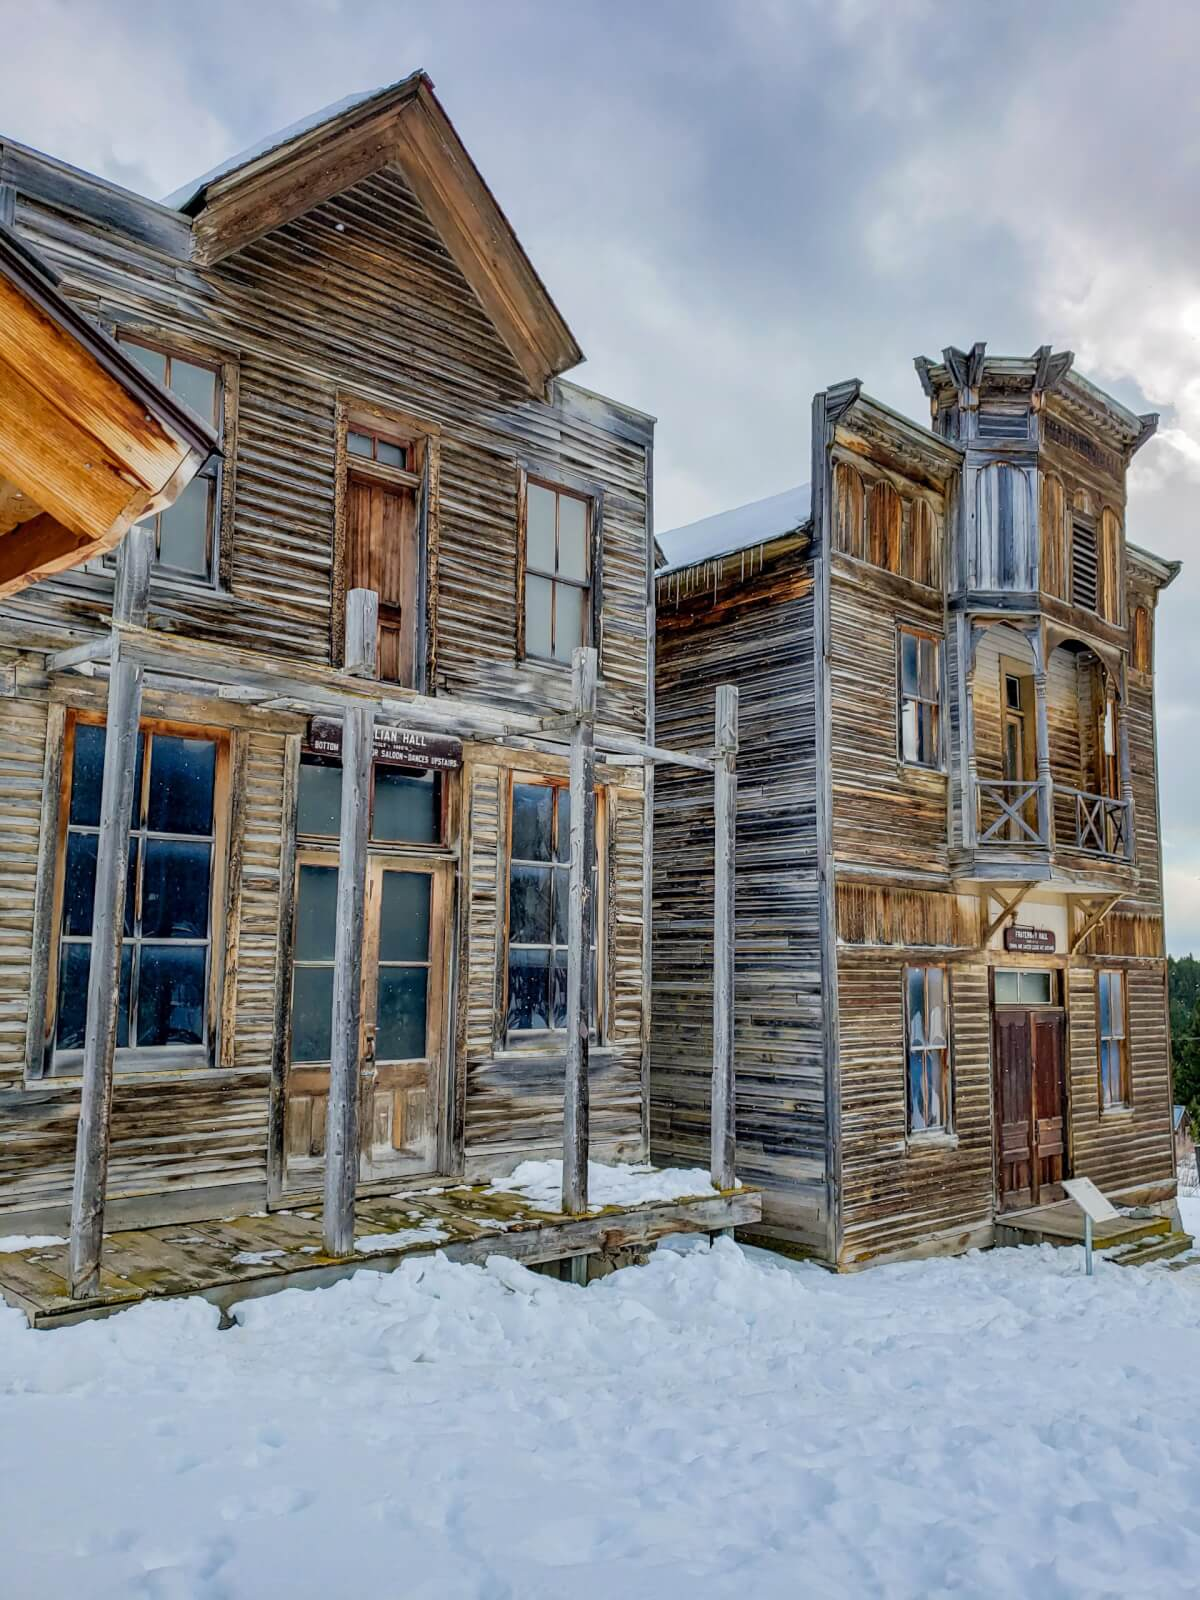 4 Authentic and Interesting Montana Ghost Towns Near Helena, Montana